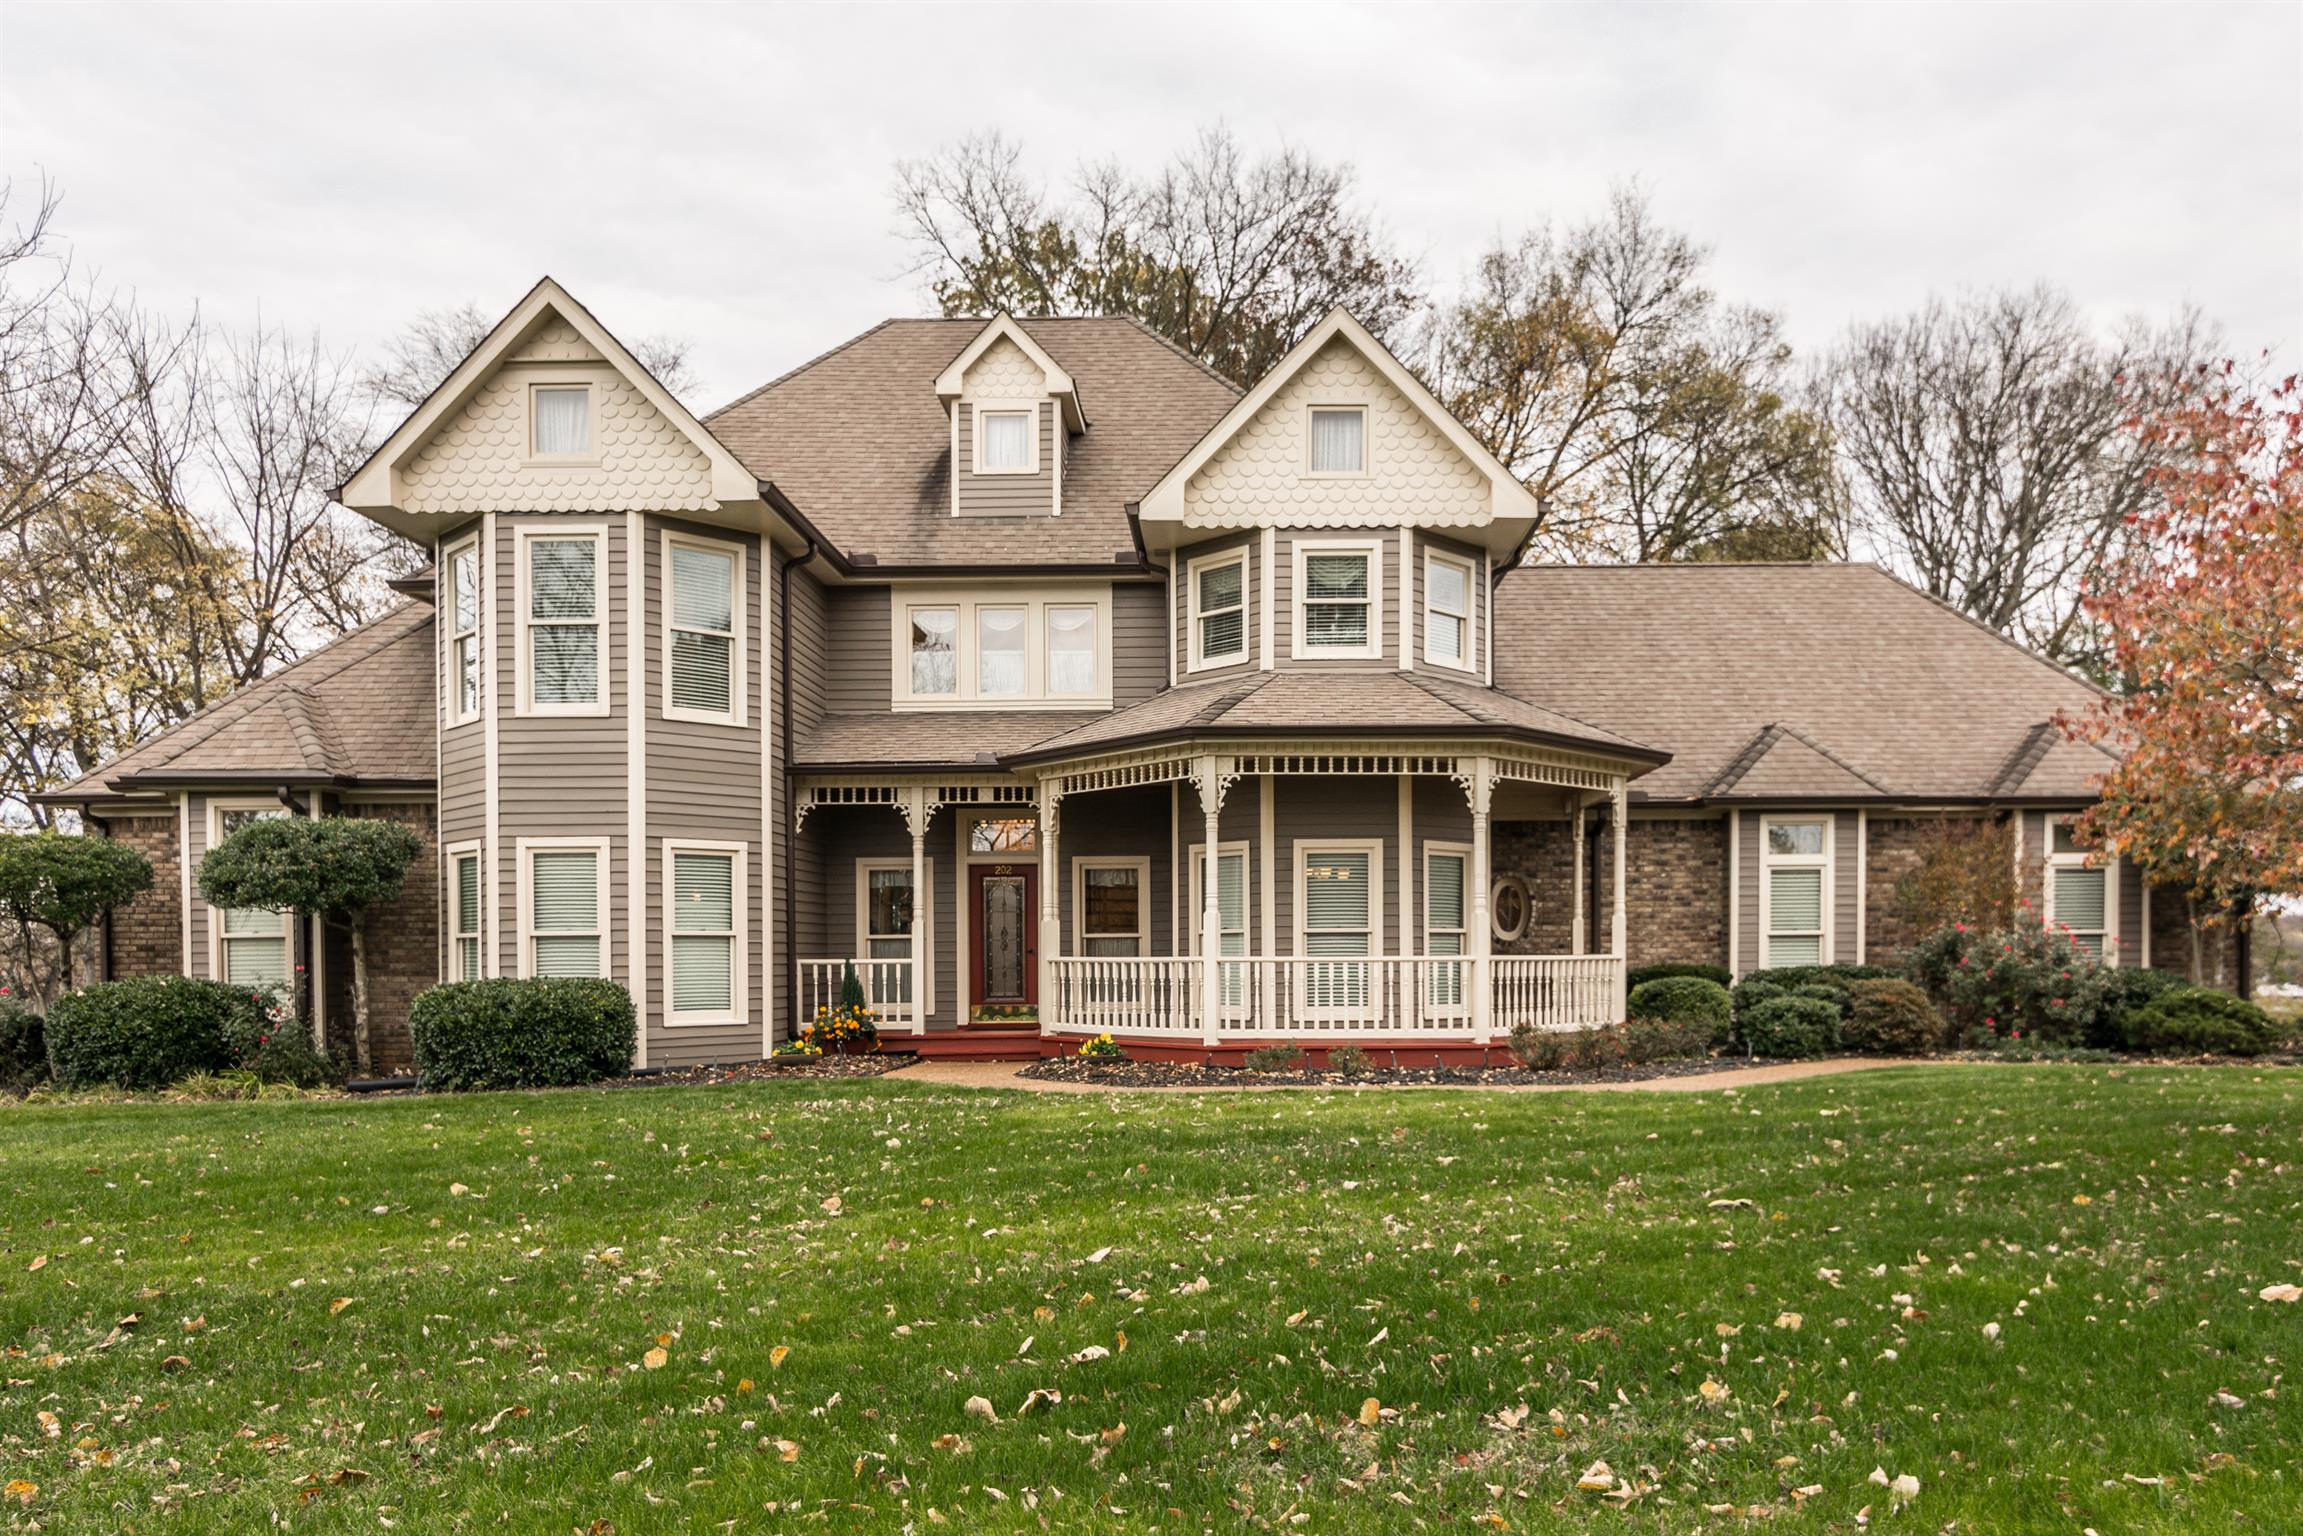 202 Woodlake Dr, Gallatin, Tennessee